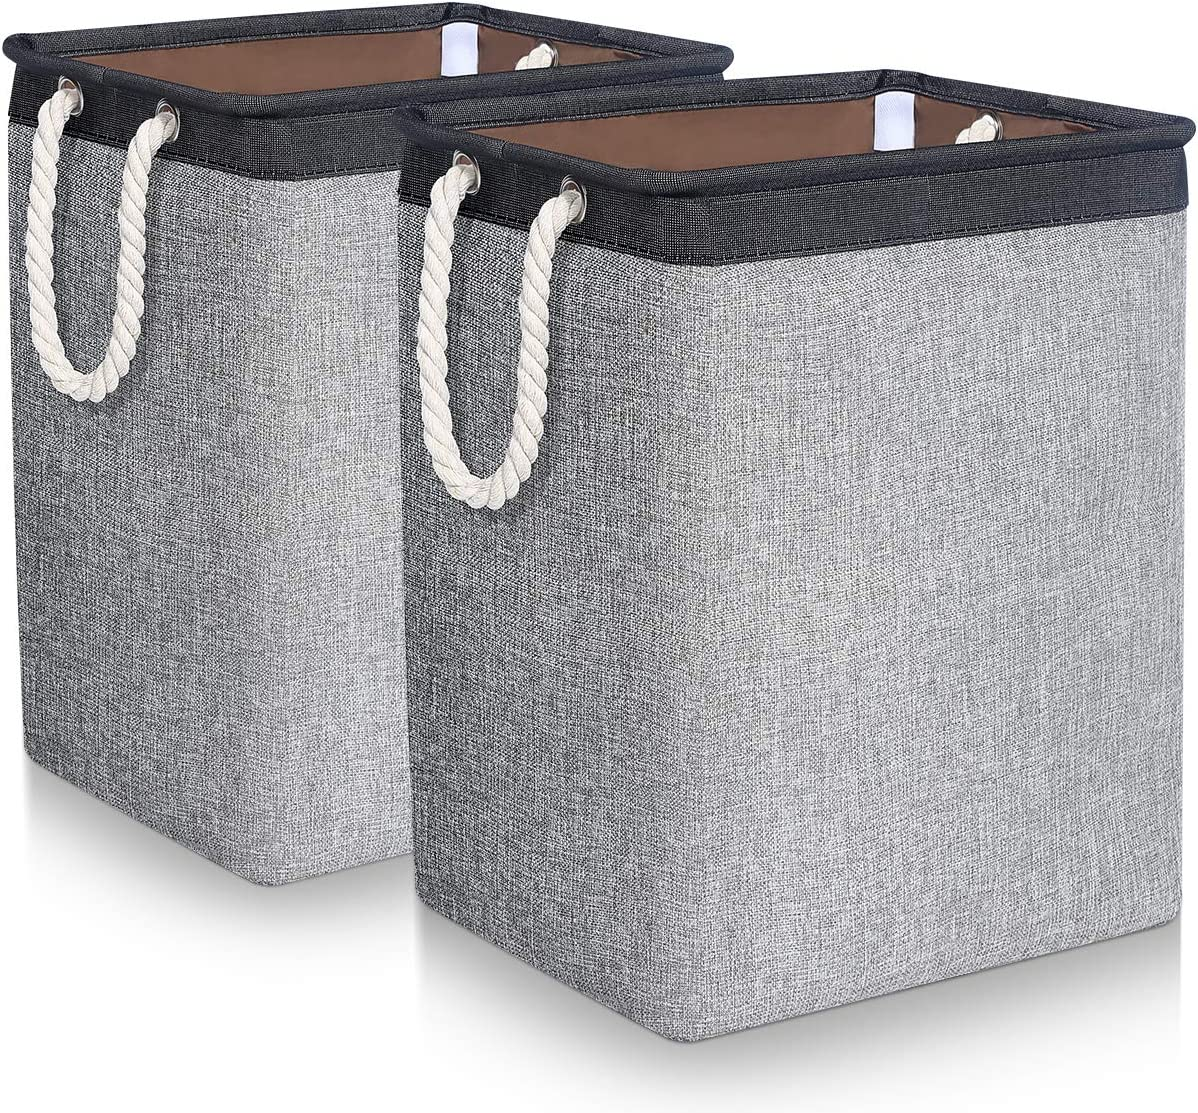 TomCare Laundry Baskets 2 Pack Foldable Clothes Baskets Portable Clothes Hamper Built-in Lining with Handles Detachable Brackets Laundry Storage Household Organizer for Home Office Organizer, Grey